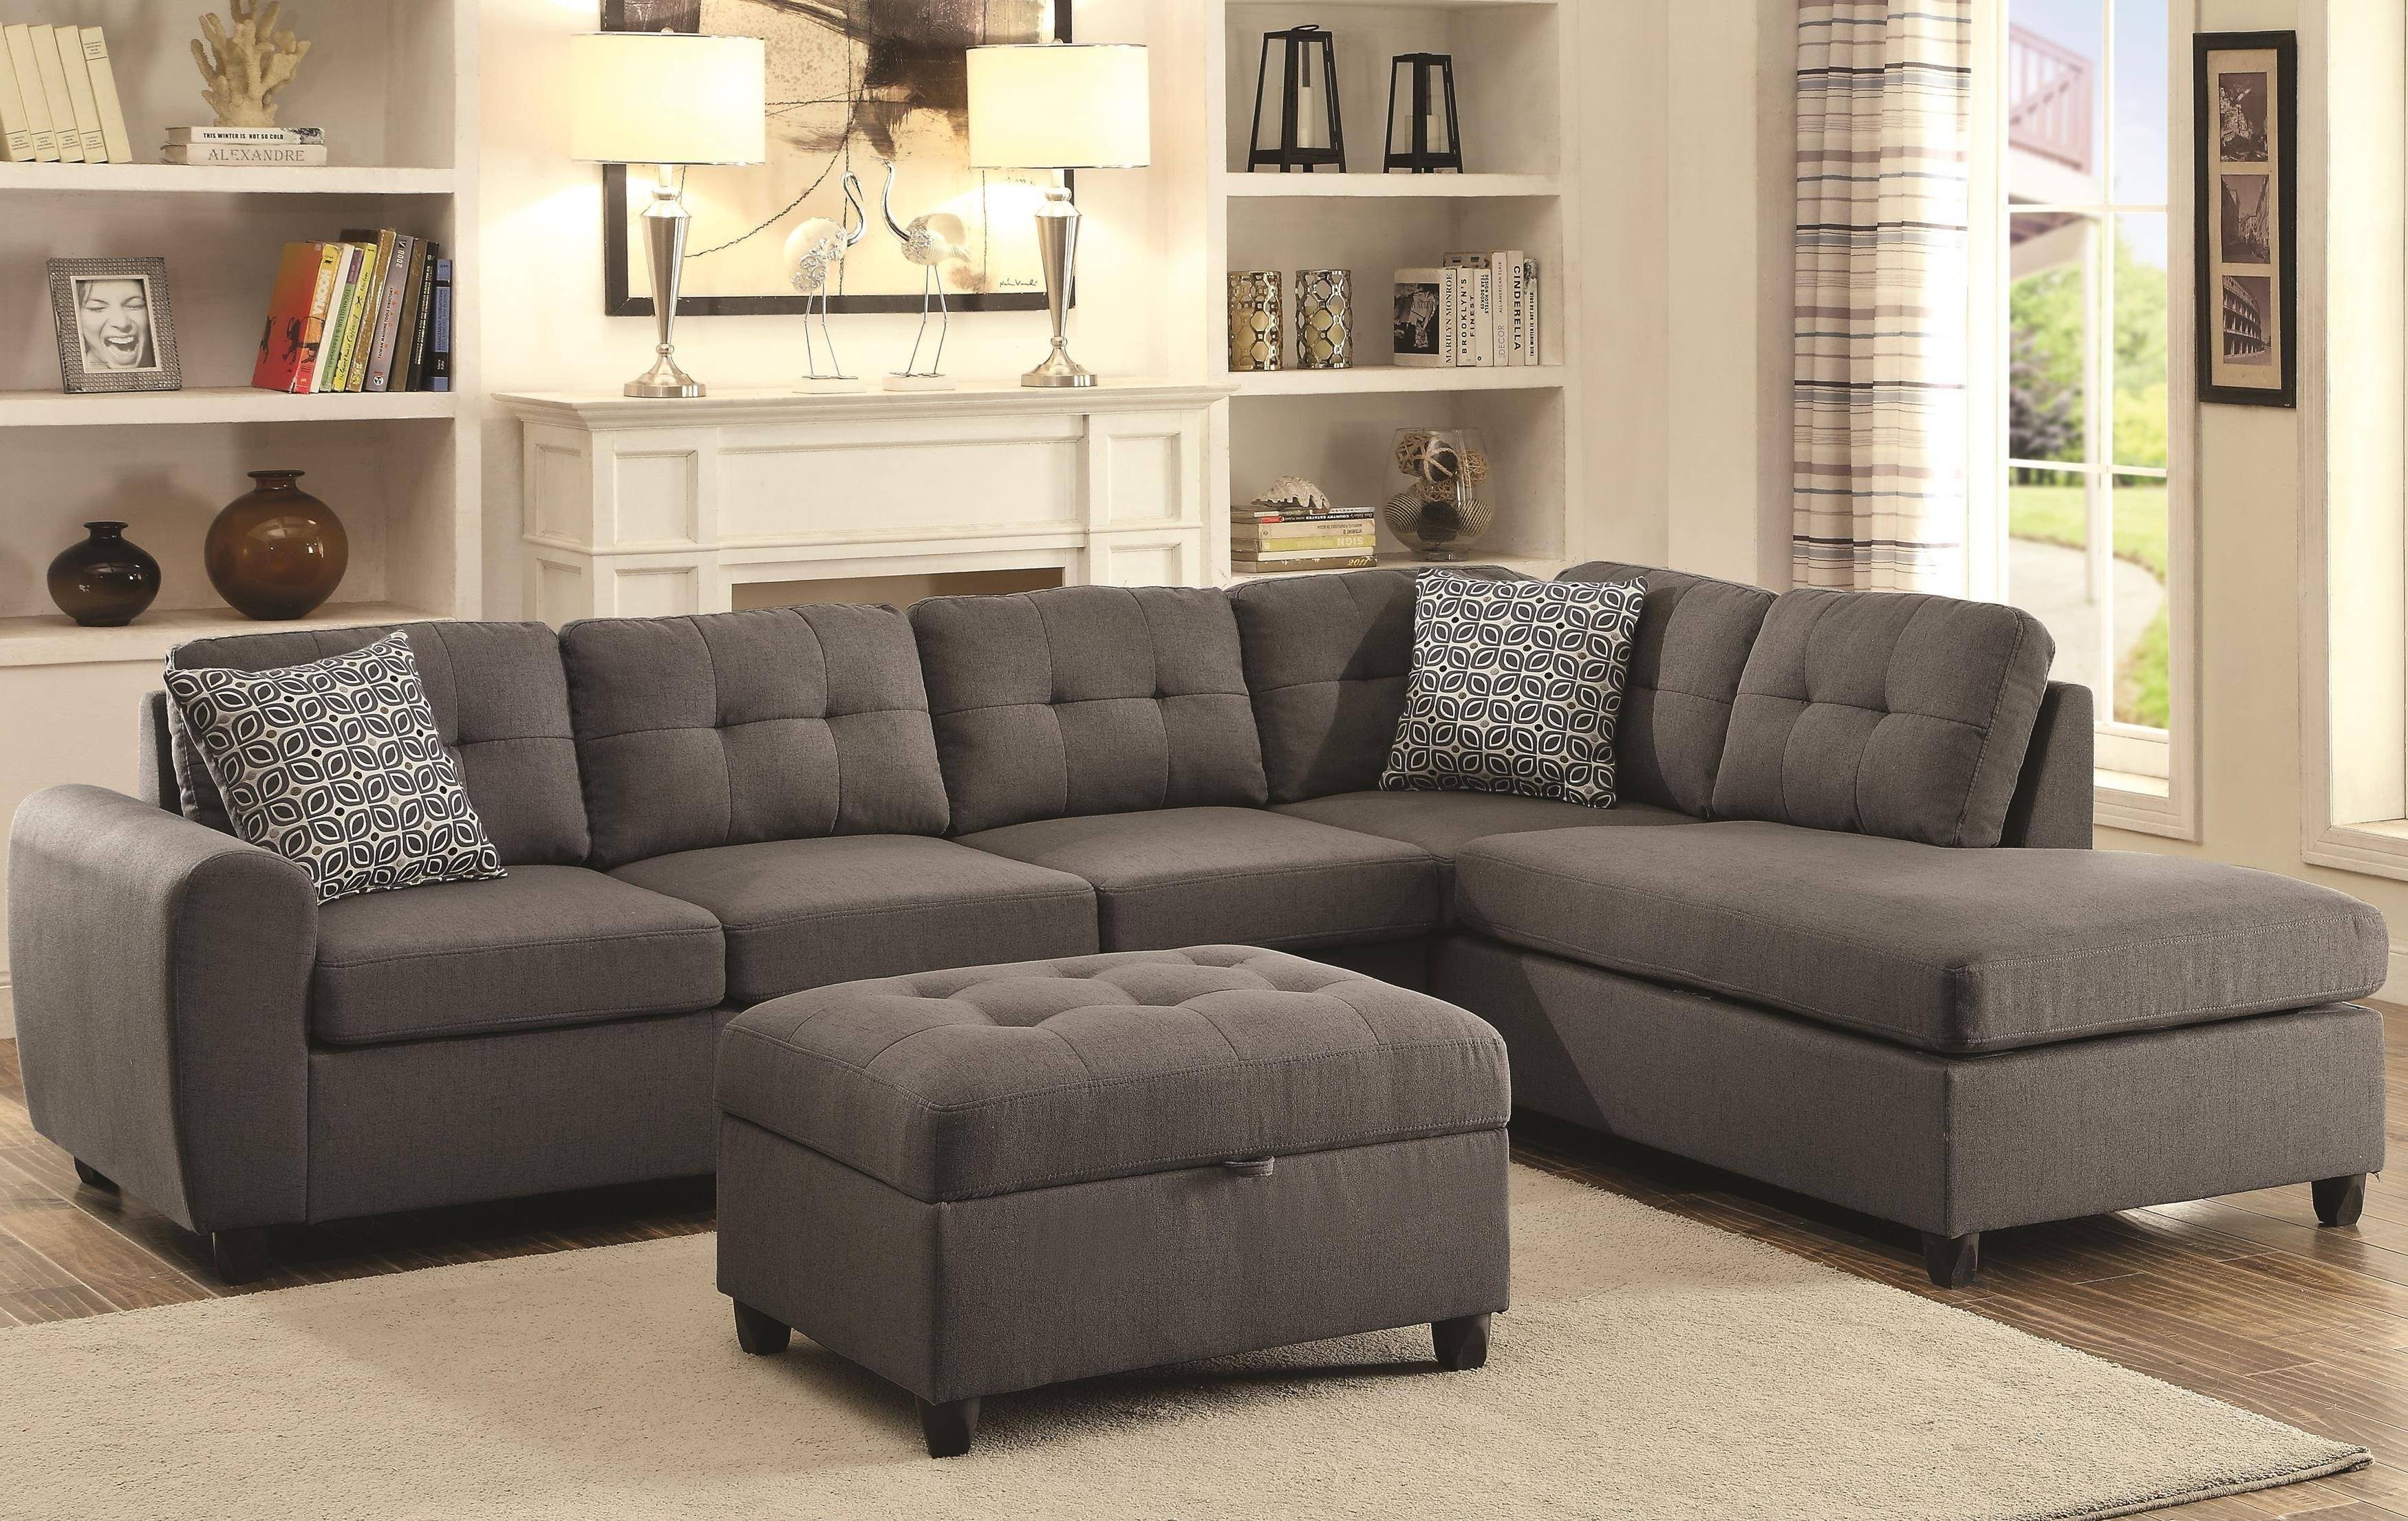 Coaster 500413 Sofa Chaise Sectional With Steel Grey Fabric Upholstery with regard to Coasters Sofas (Image 5 of 15)